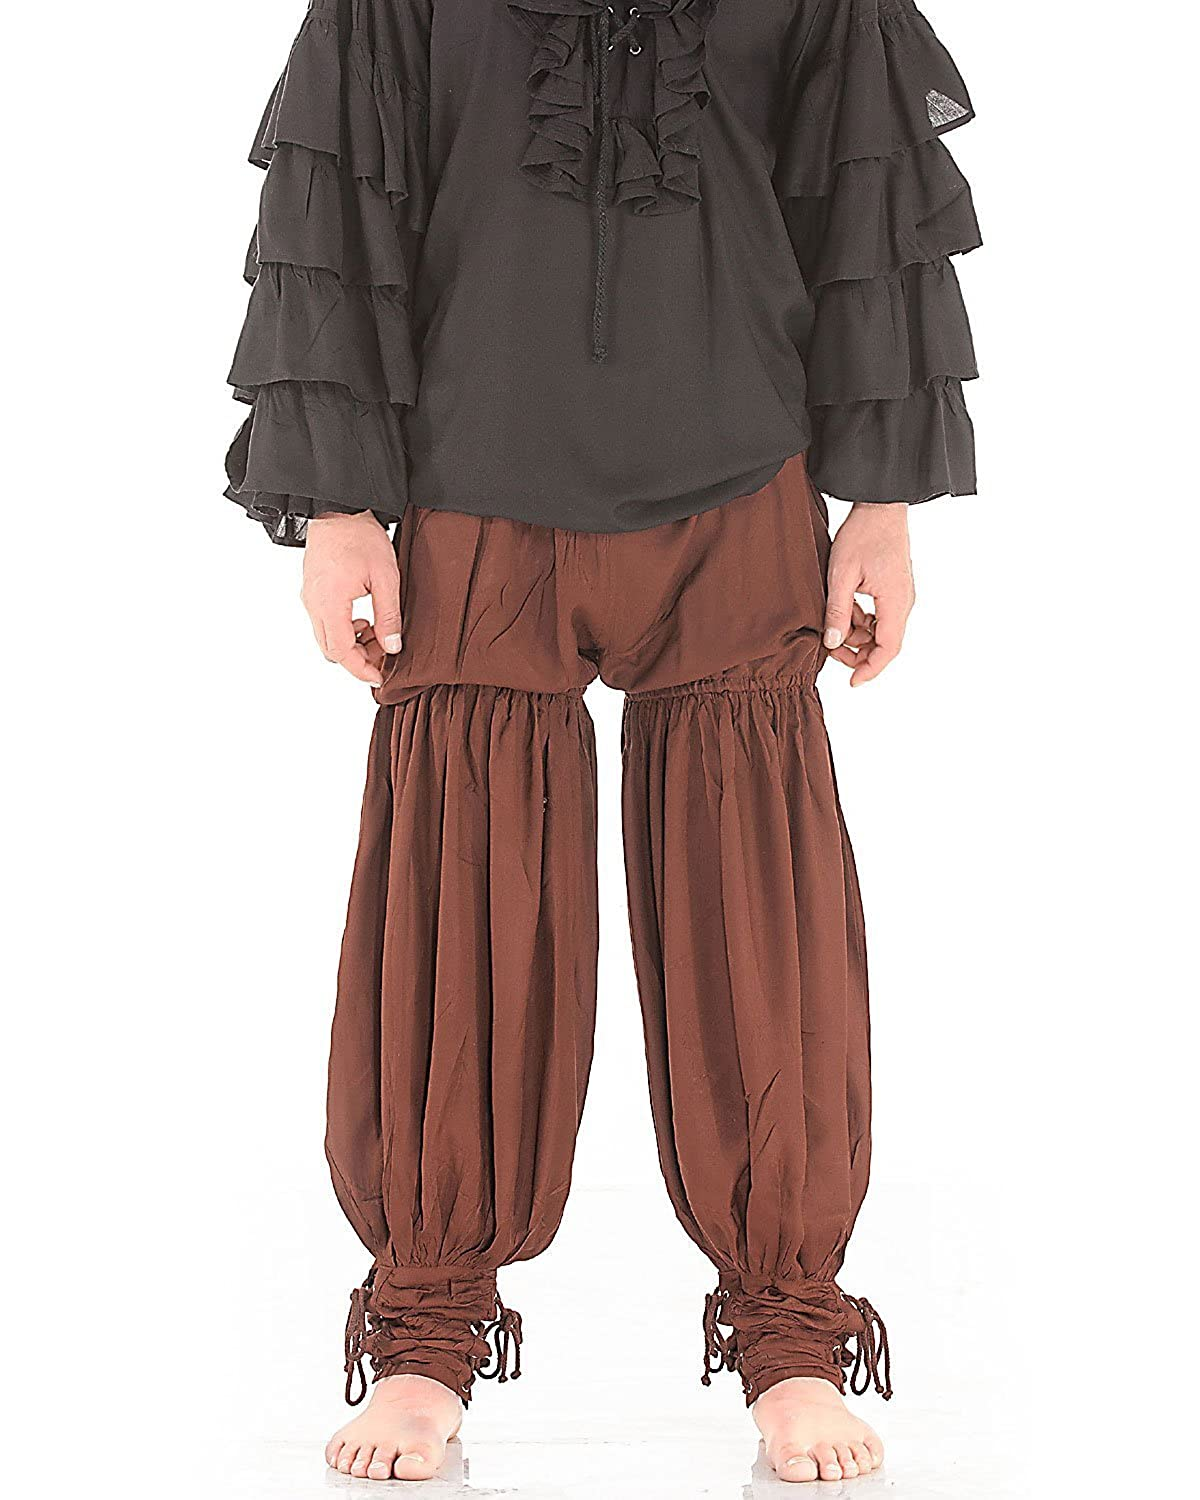 Deluxe Adult Costumes - Historically accurate Medieval Renaissance chocolate pirate swordsman pants by ThePirateDressing